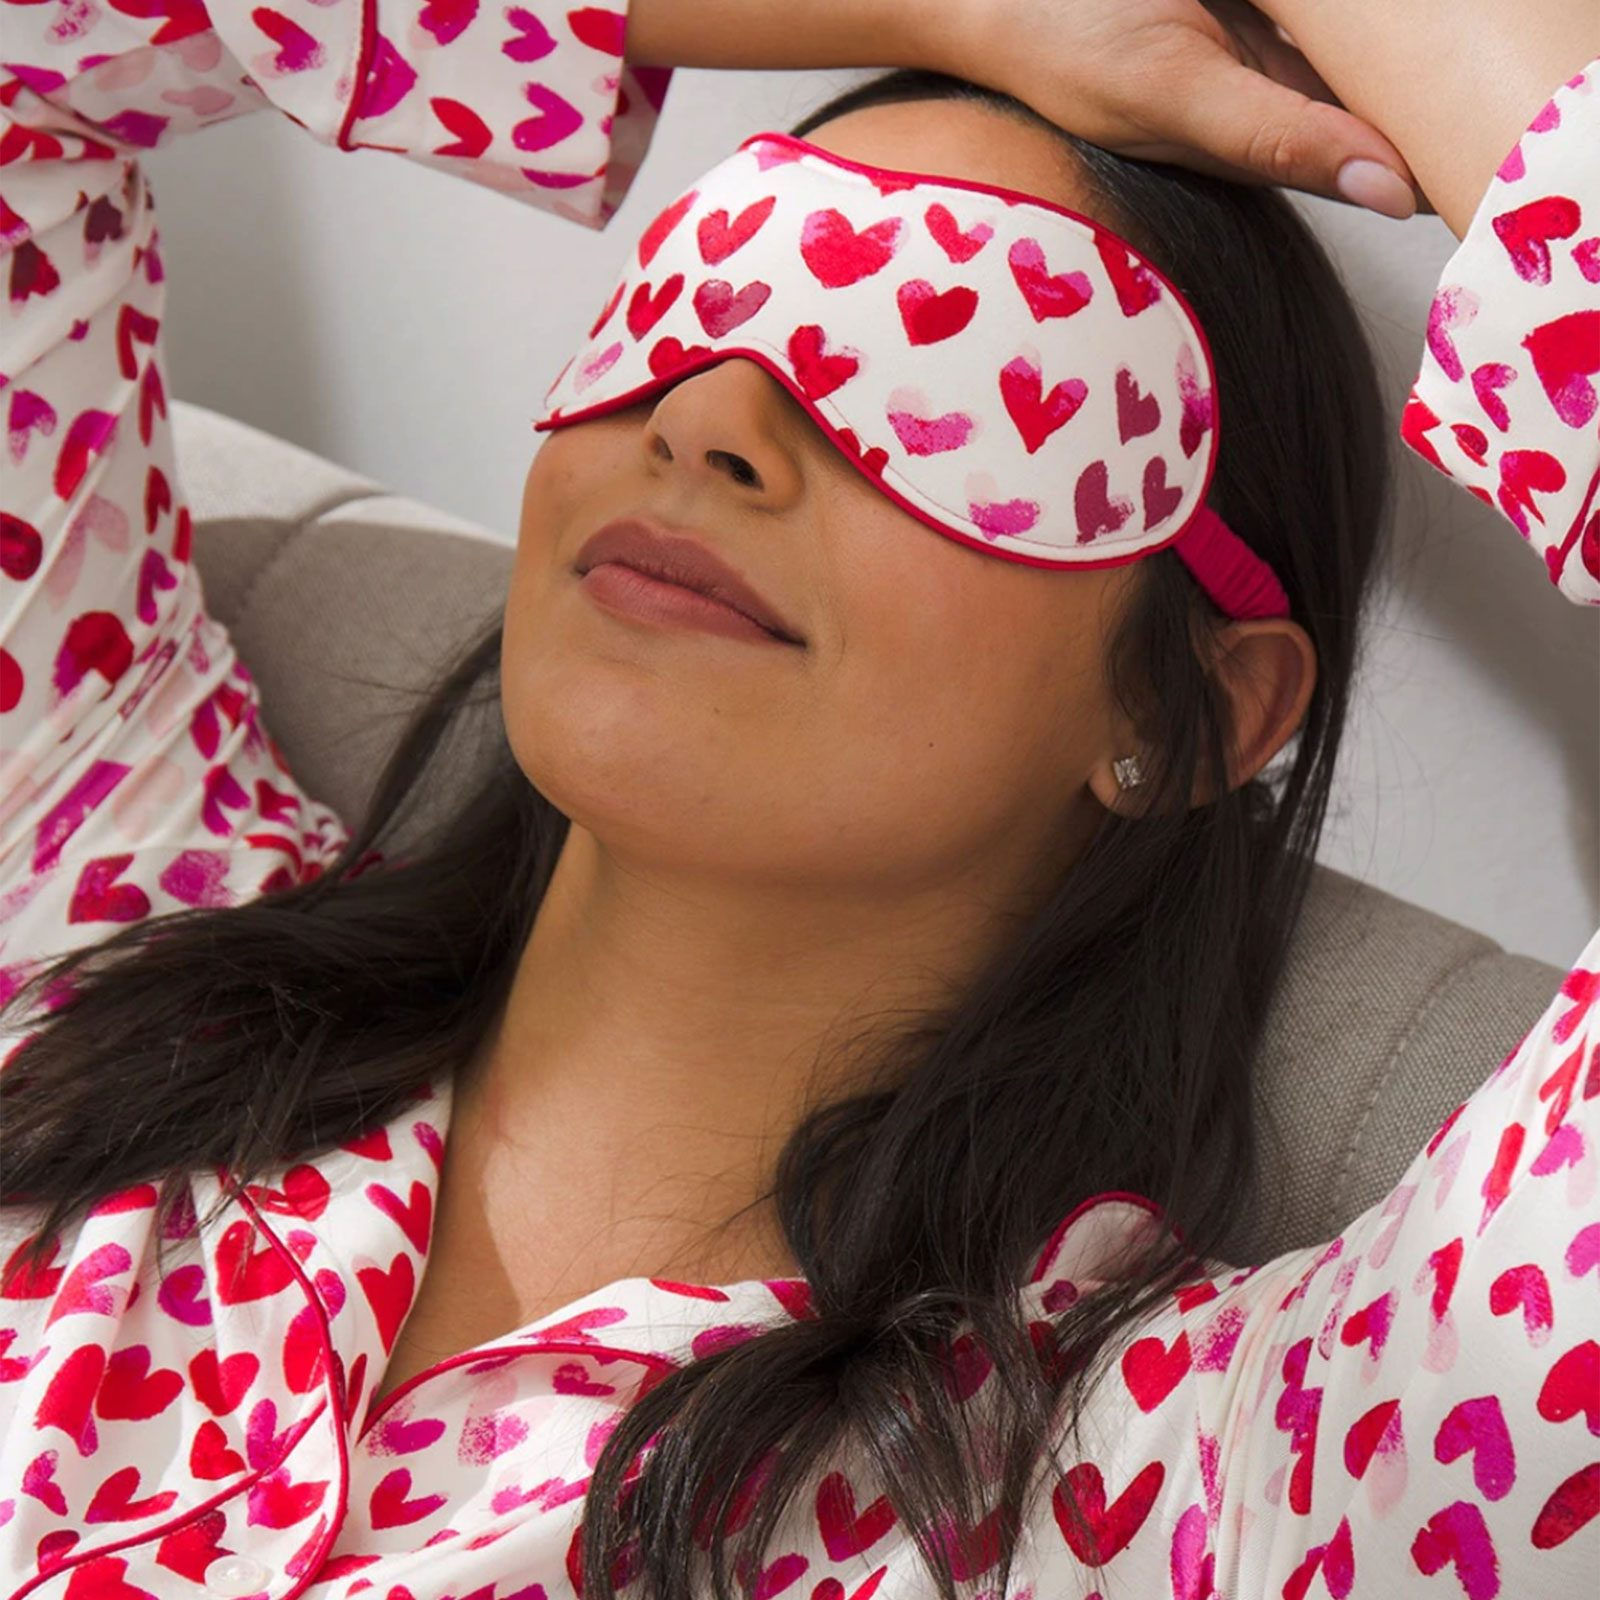 For the queen of beauty sleep: Soma Cool Nights Eye Mask